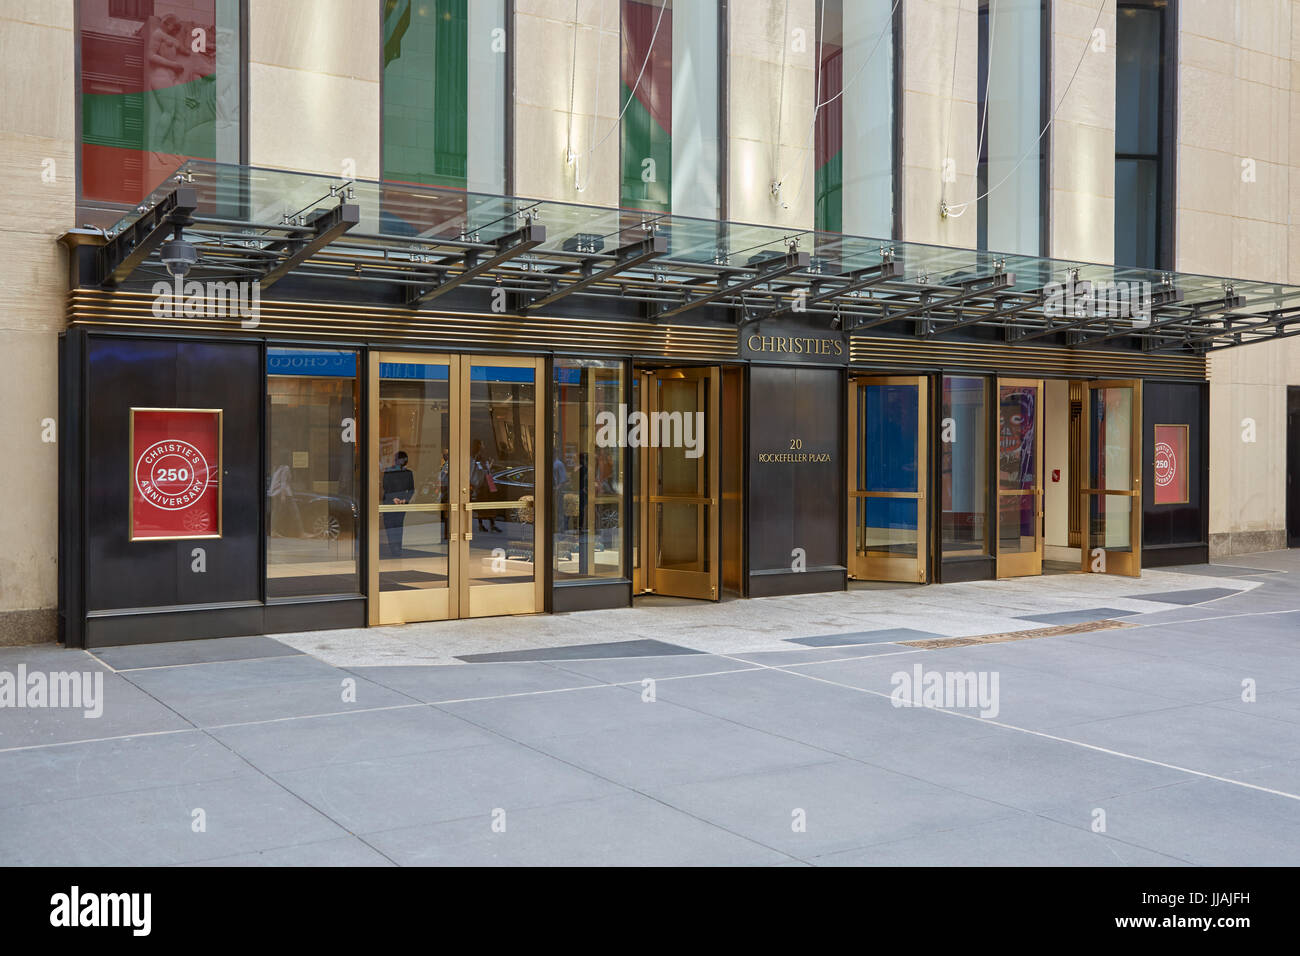 Christie's American branch entrance in Rockefeller Center in New York - Stock Image